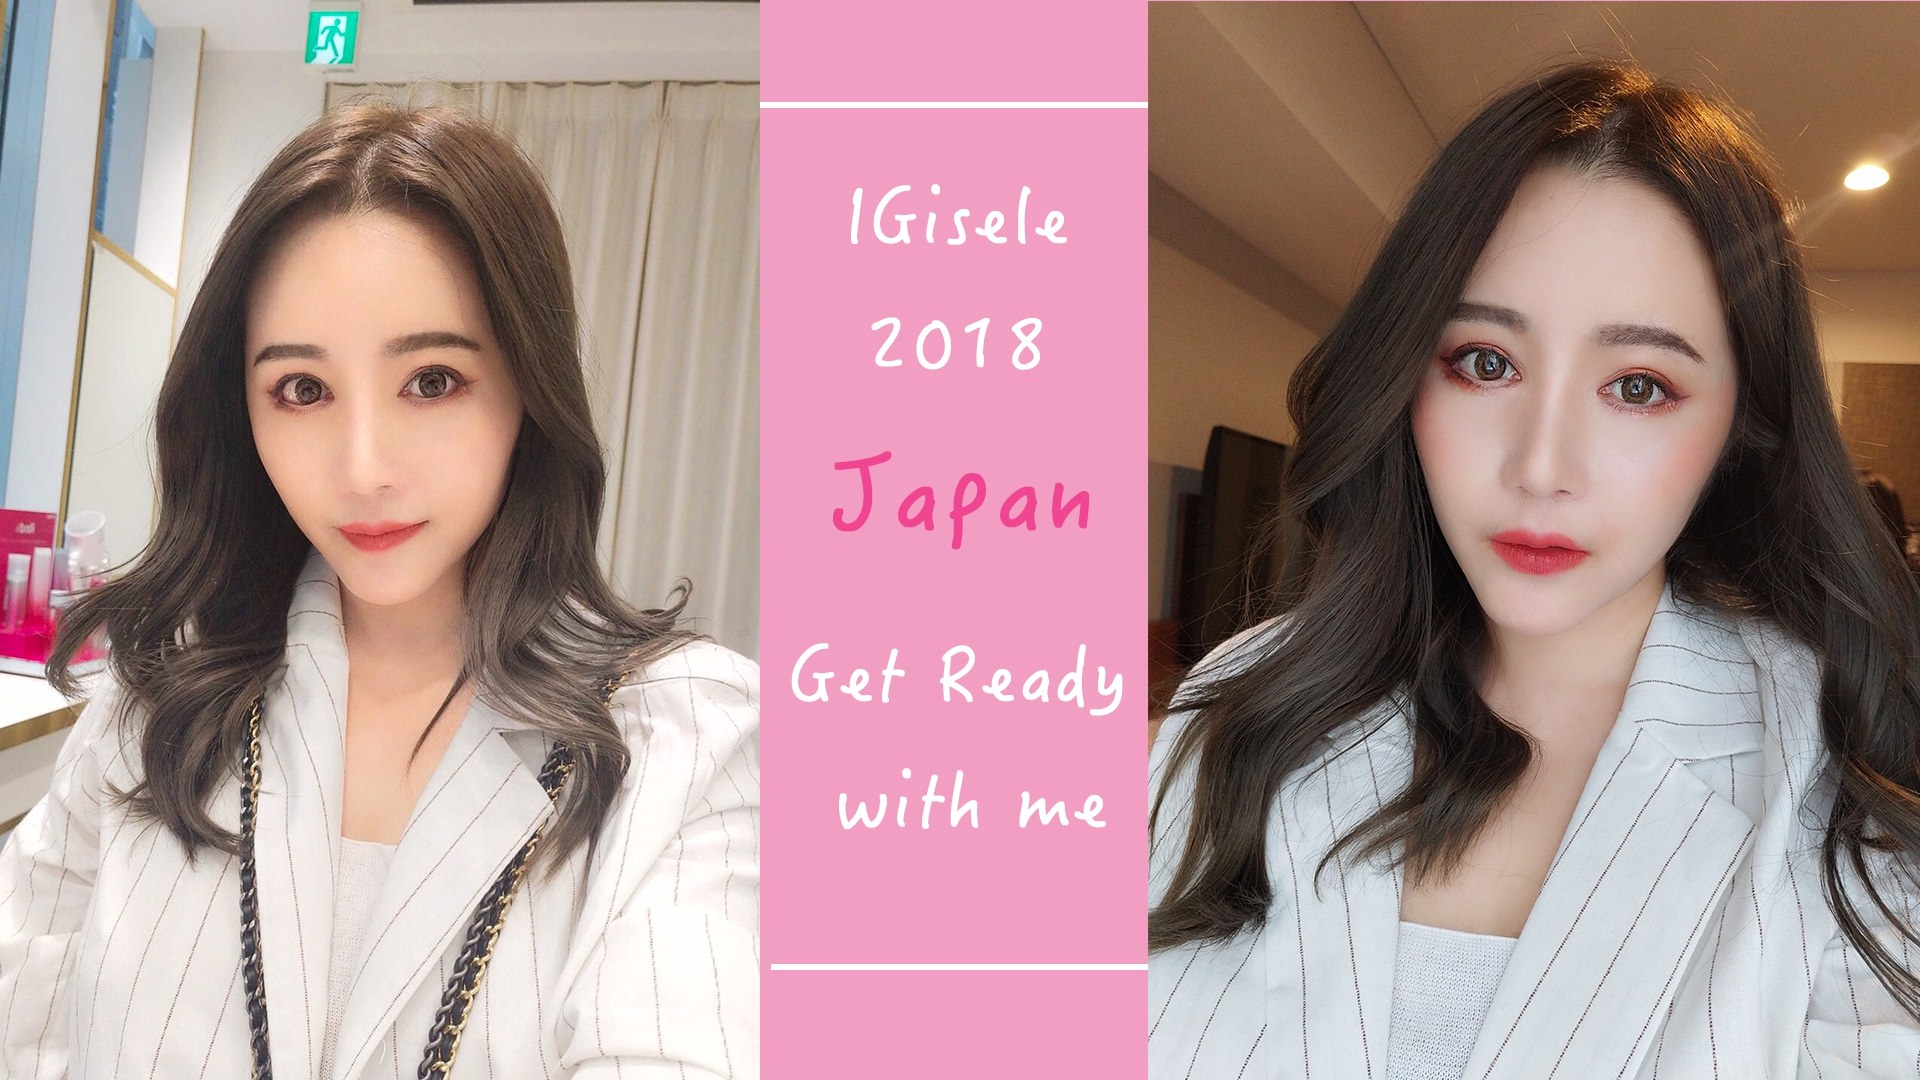 [YOUTUBE] GRAM 日本快閃之旅的妝容 get ready with me! | IGisele